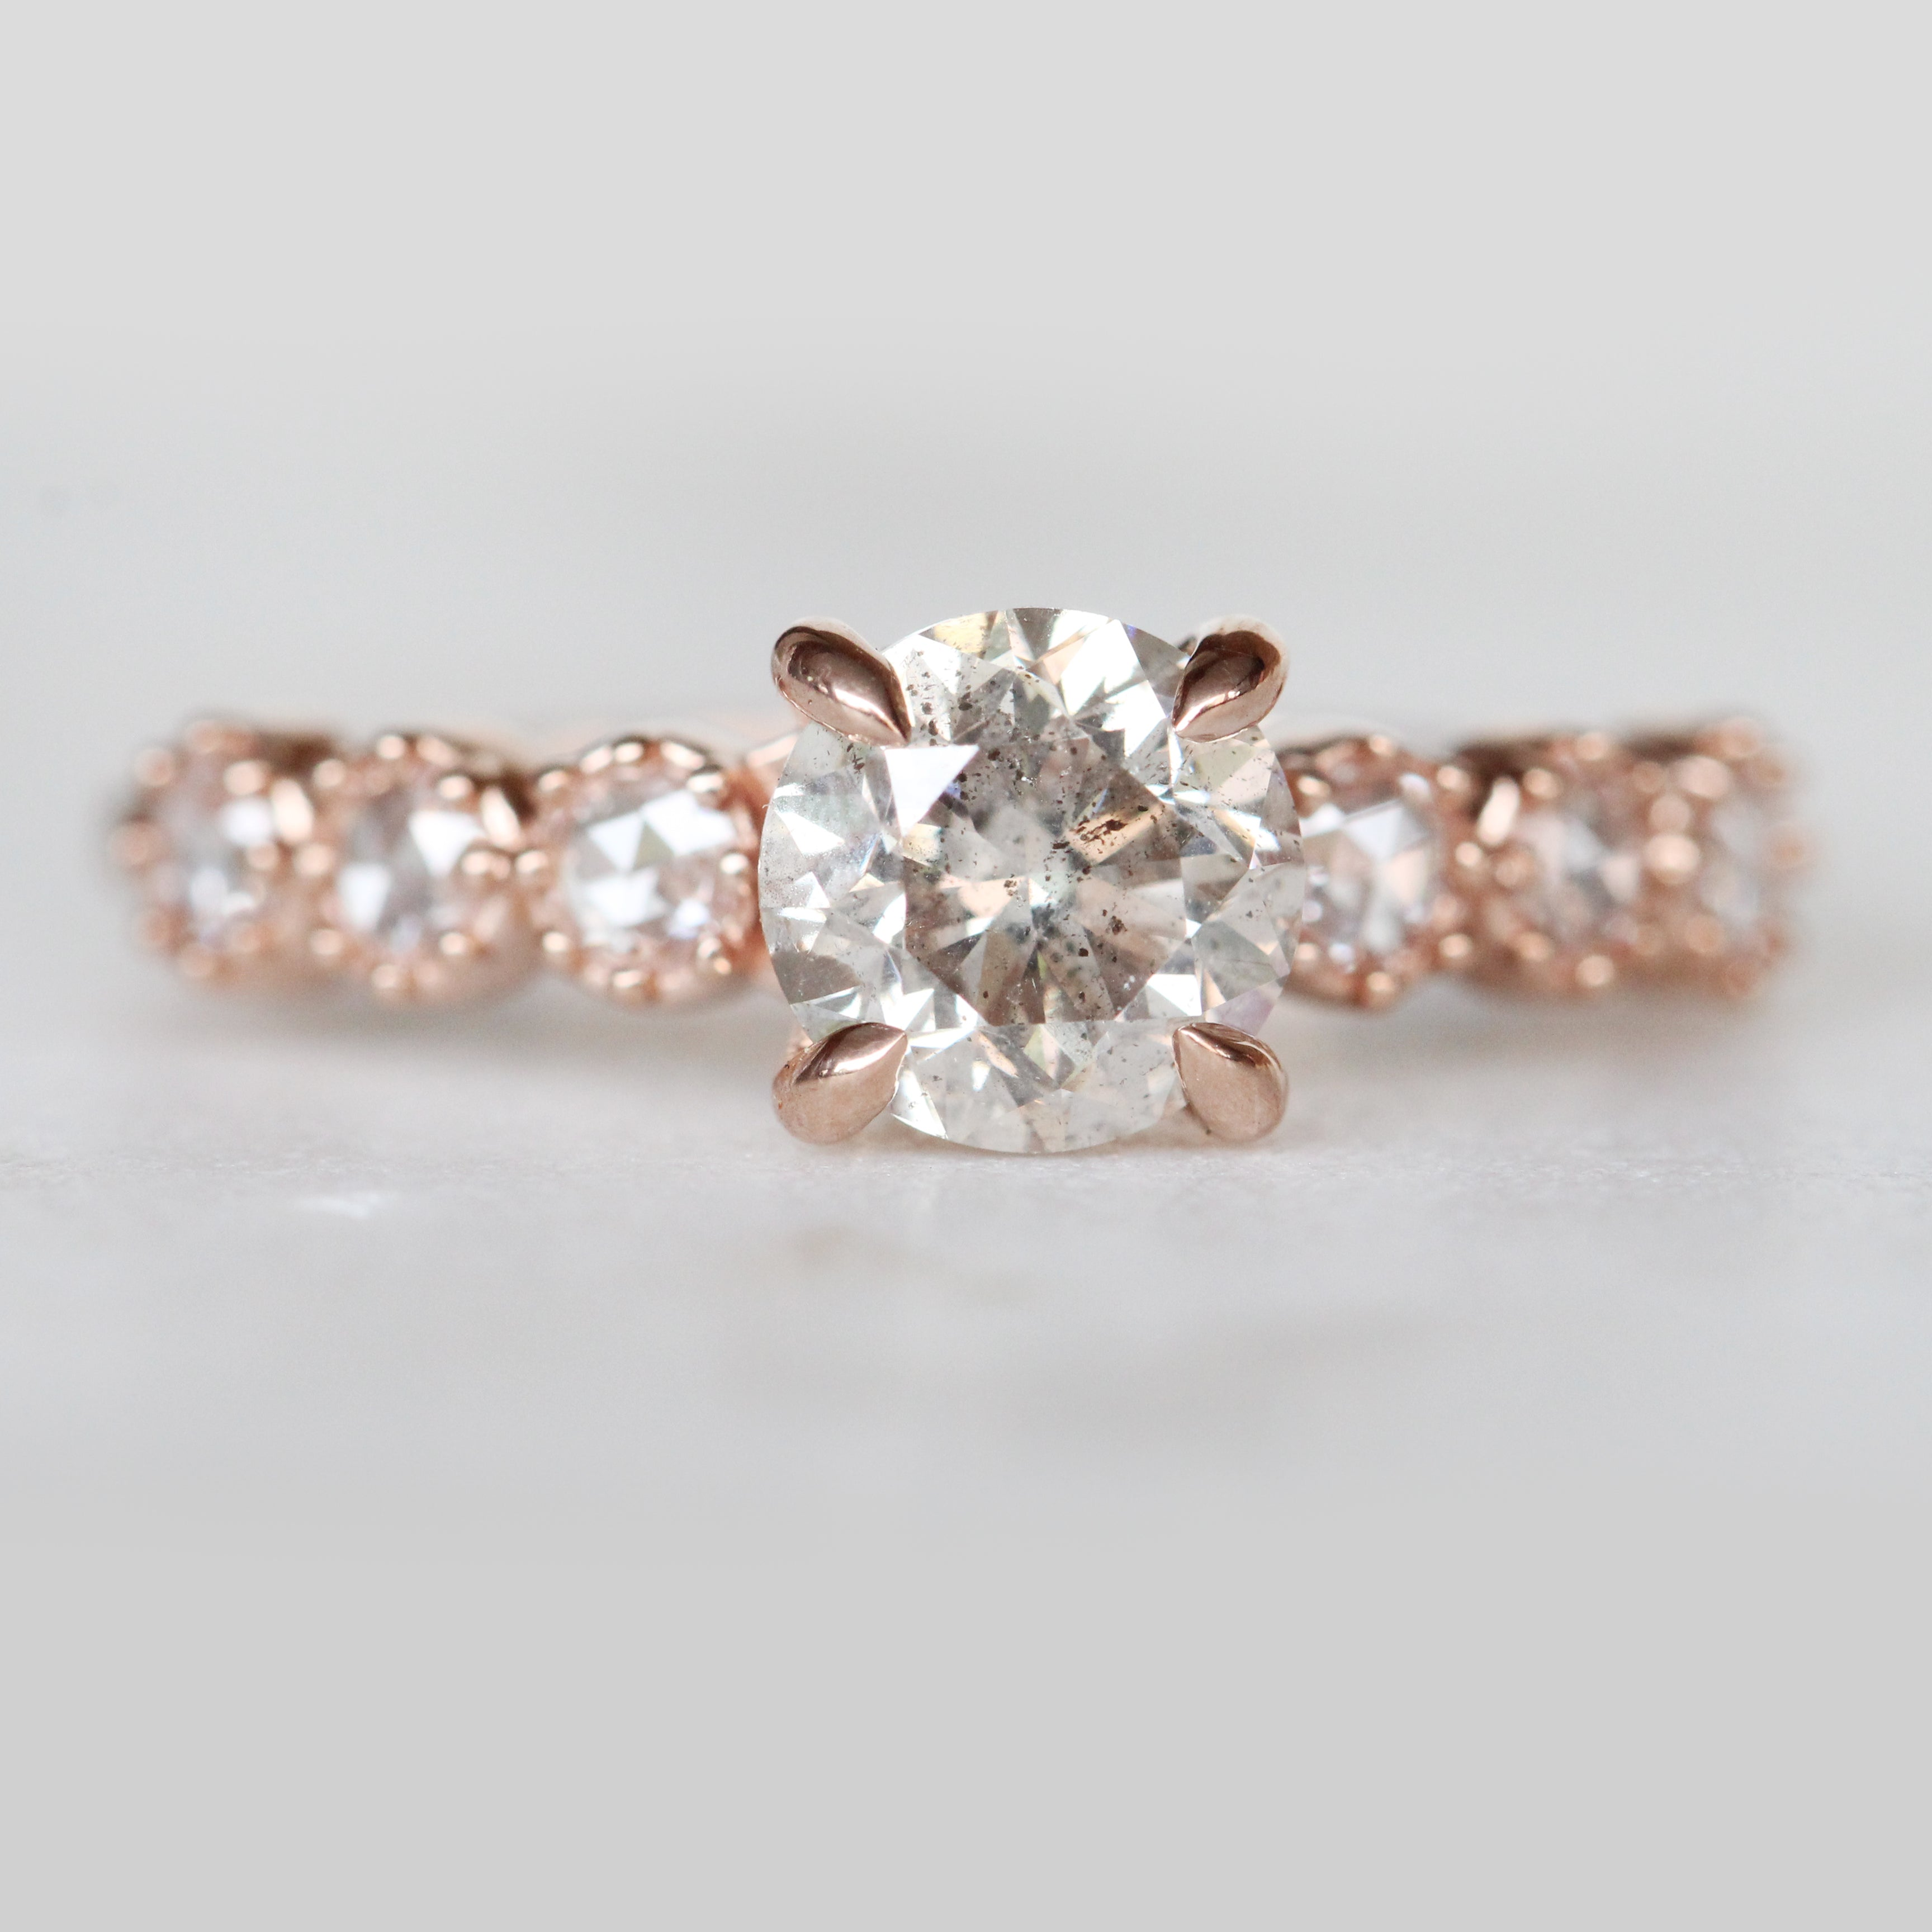 Rudy ring with 1 carat round white secretly celestial diamond in 14k rose gold and rose cut diamond bezel milgrain accents- ready to size and ship - Salt & Pepper Celestial Diamond Engagement Rings and Wedding Bands  by Midwinter Co.